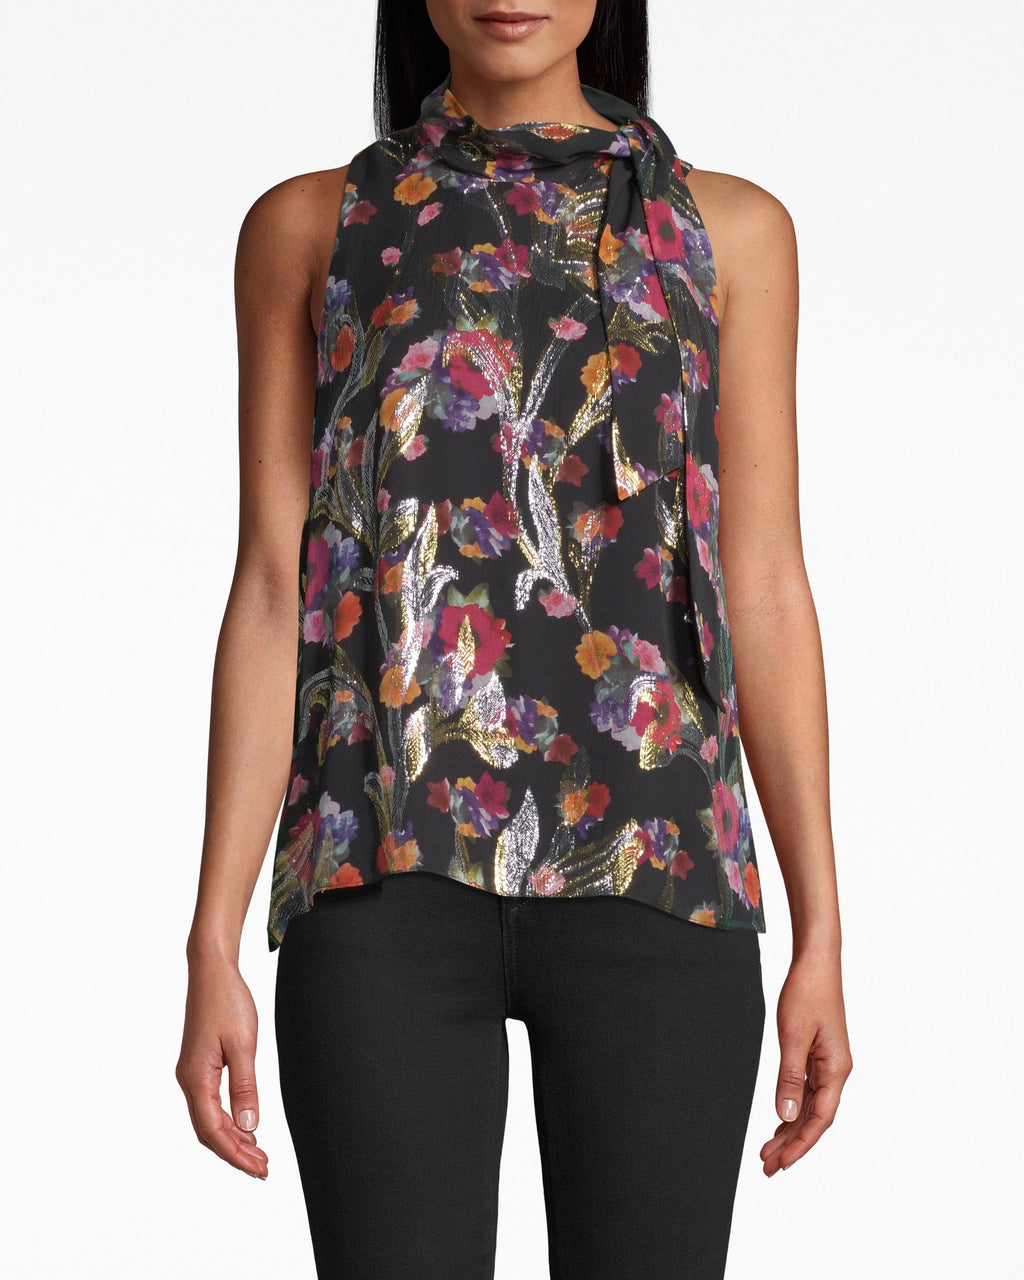 BC20083 - BOUQUET BEAUTY TURTLENECK TOP - tops - blouses - Wear from the office to cocktails. This turtleneck sleeveless top gathers at the neck and can be adjusted with the draping tie. The vibrant Bouquet Beauty print appears shiny on the front side. The hem loosely flows to the waist. Exposed buttons and keyhole opening for closure.